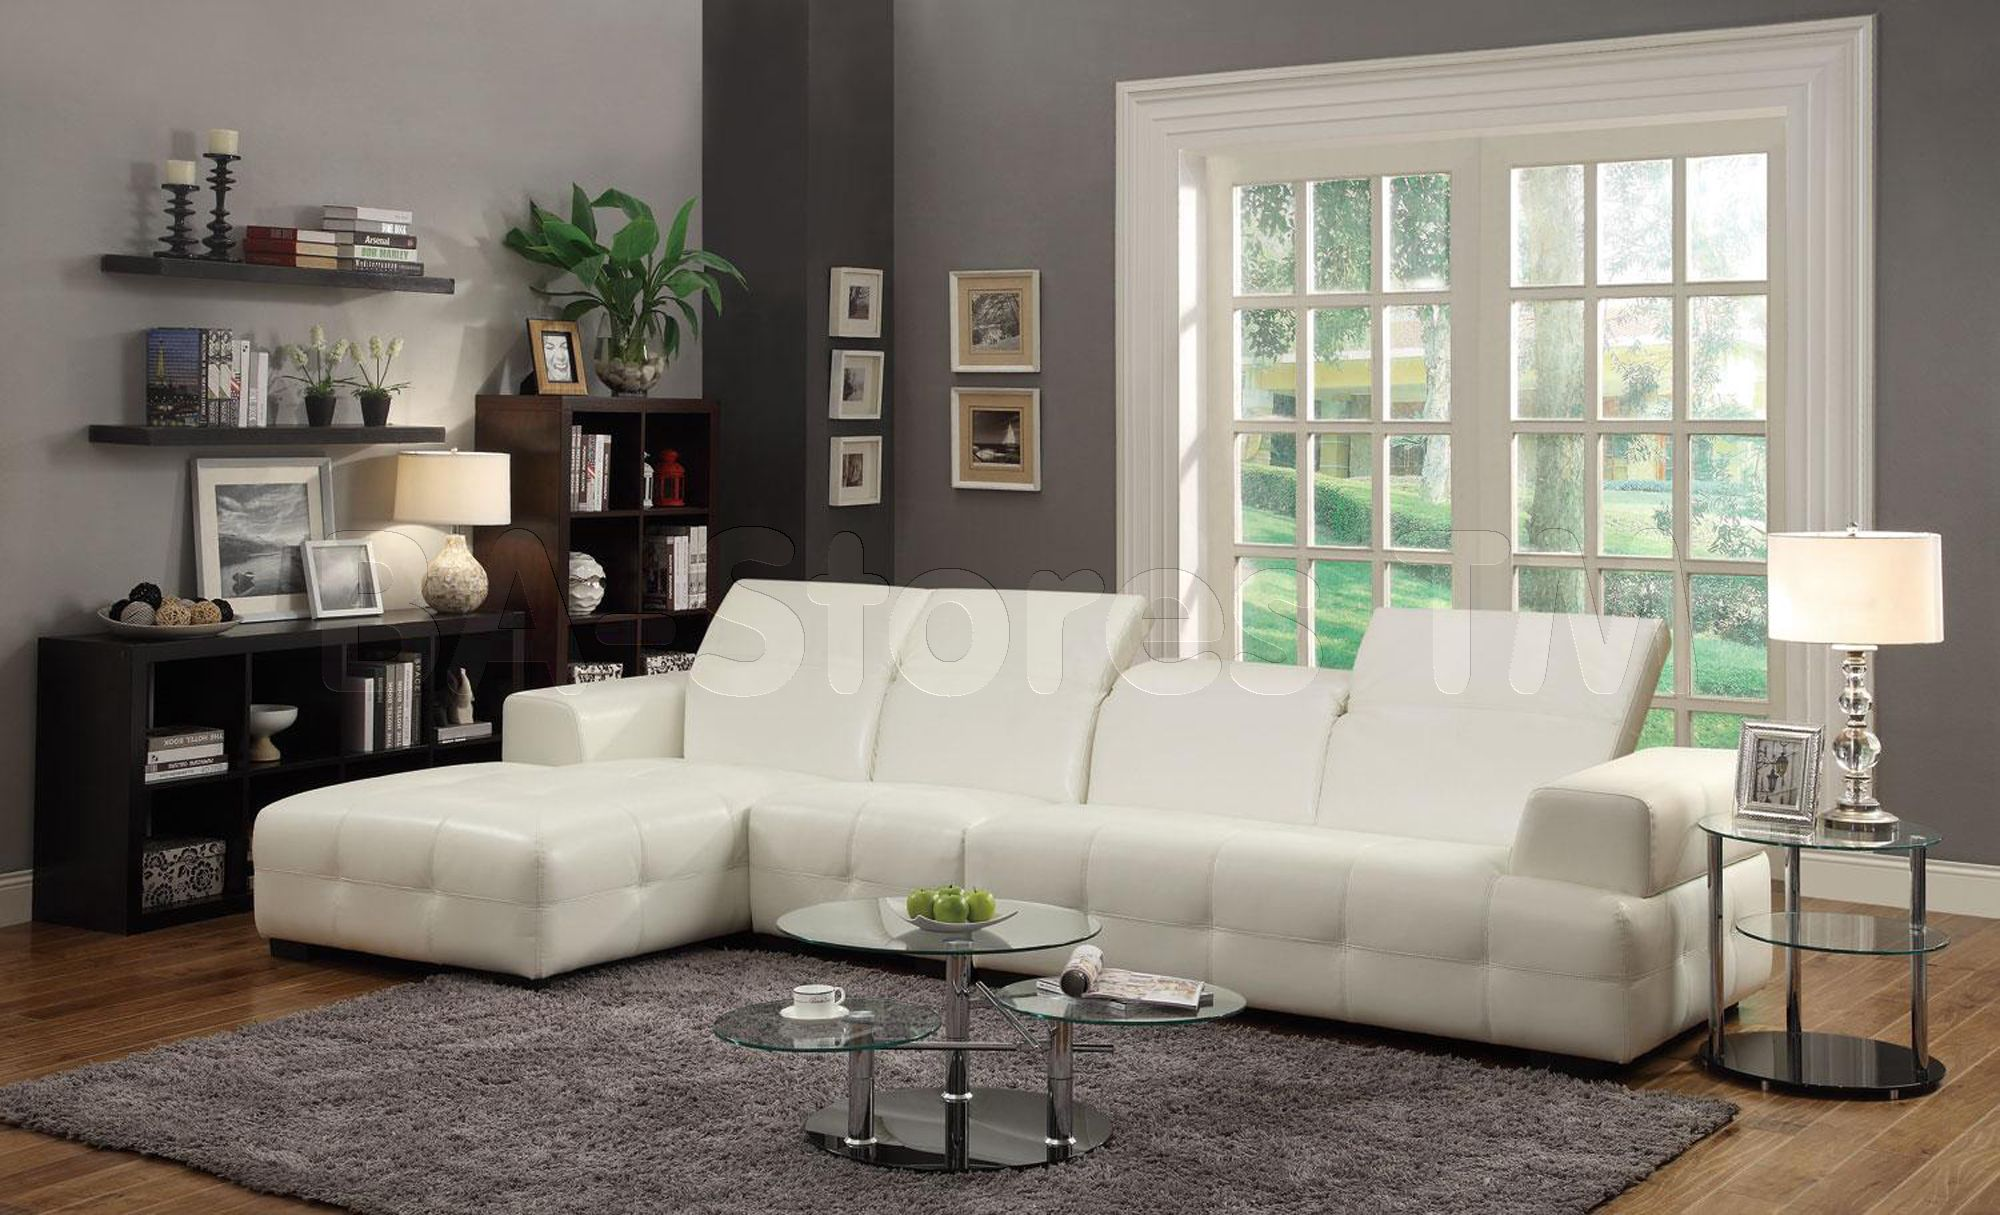 Darby White Sectional Sofa & Armless Chair Contemporary